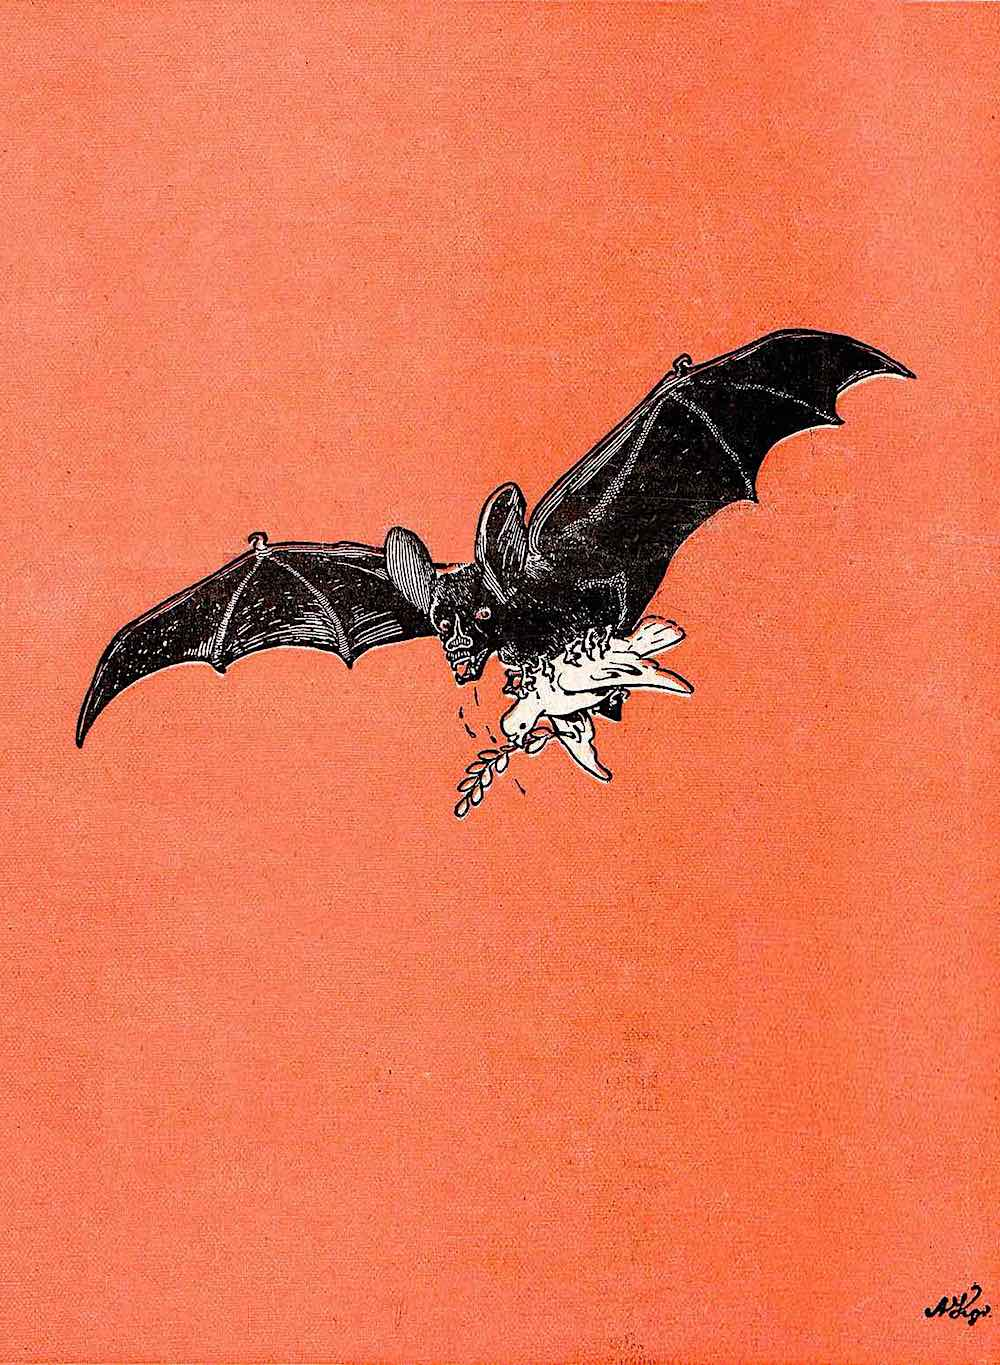 an Arthur Krüger illustration of a vampire bat carrying a peace dove in a red sky